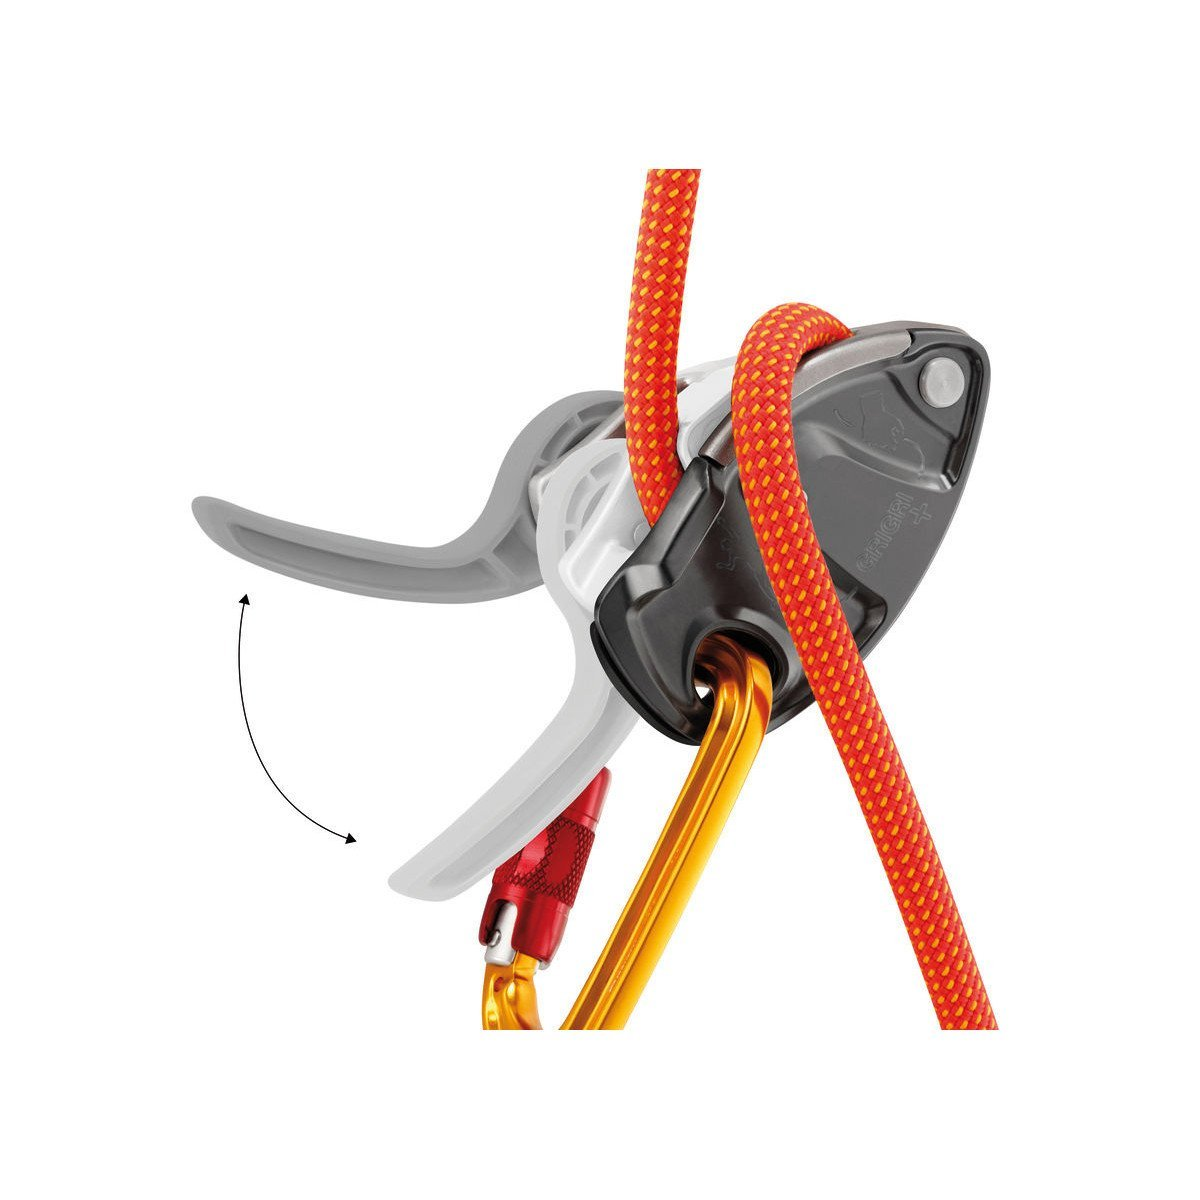 Petzl Grigri + belay device, showing closed in use closed with rope